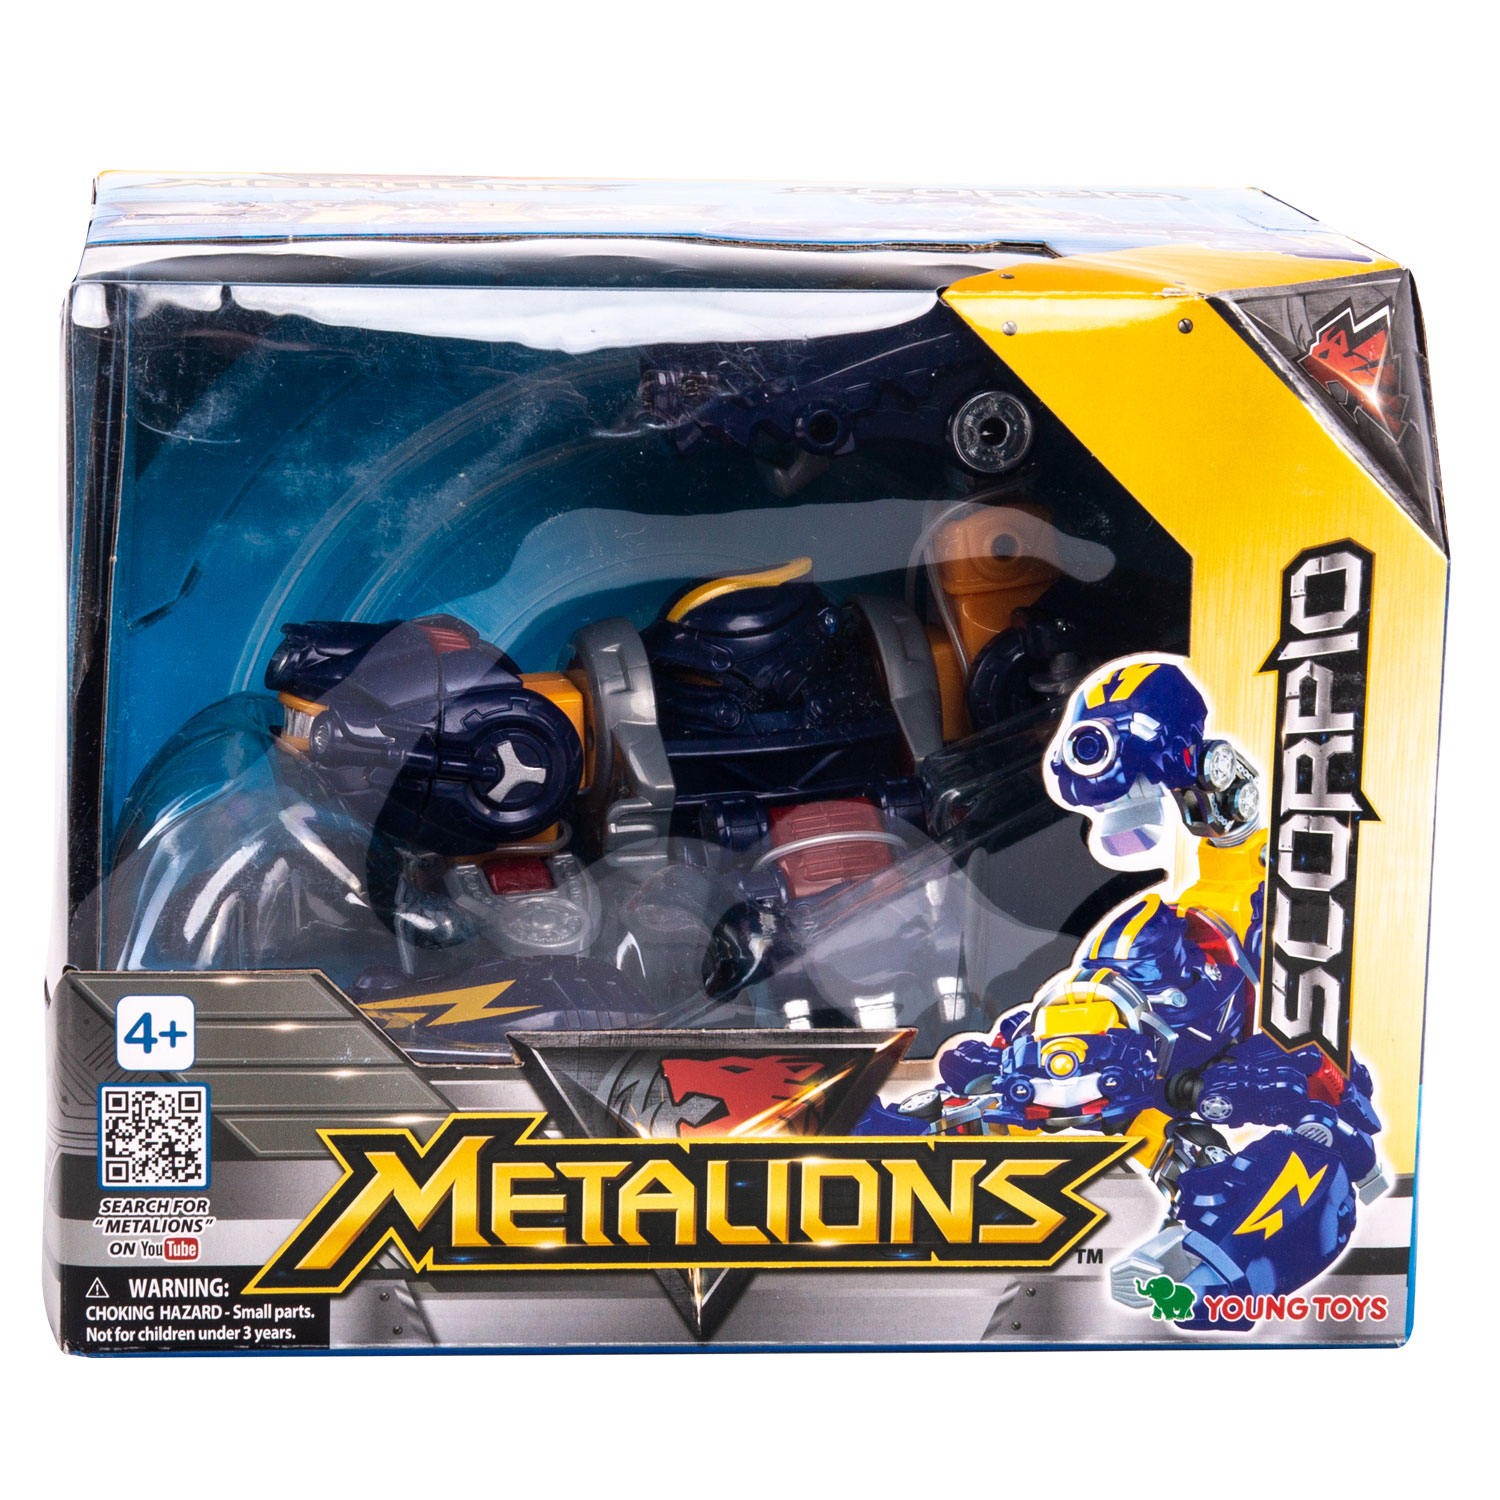 YOUNG TOYS METALIONS Main Scorpio Action Figure